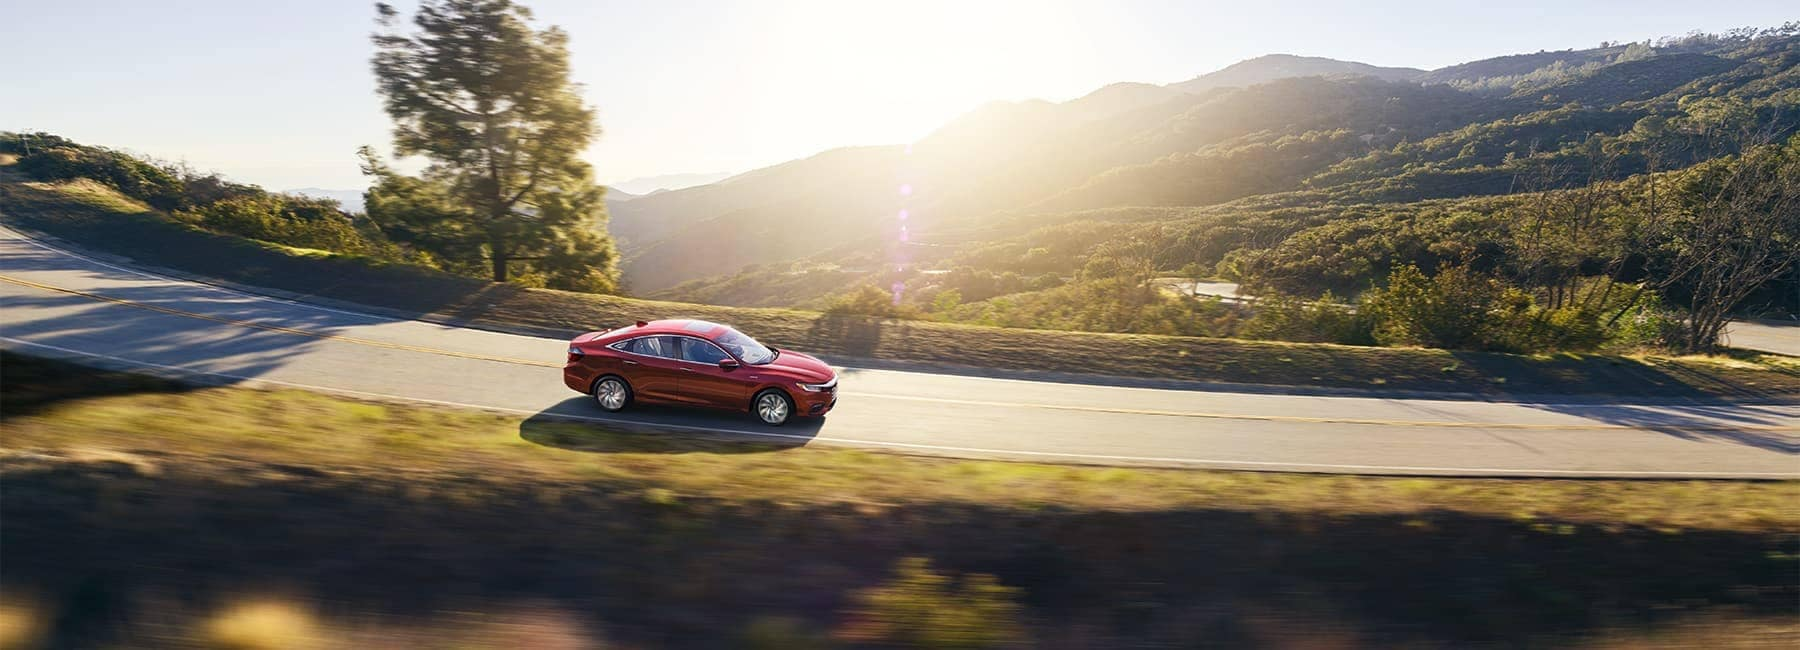 2021-honda-insight-driving-in-the-mountains-mobile